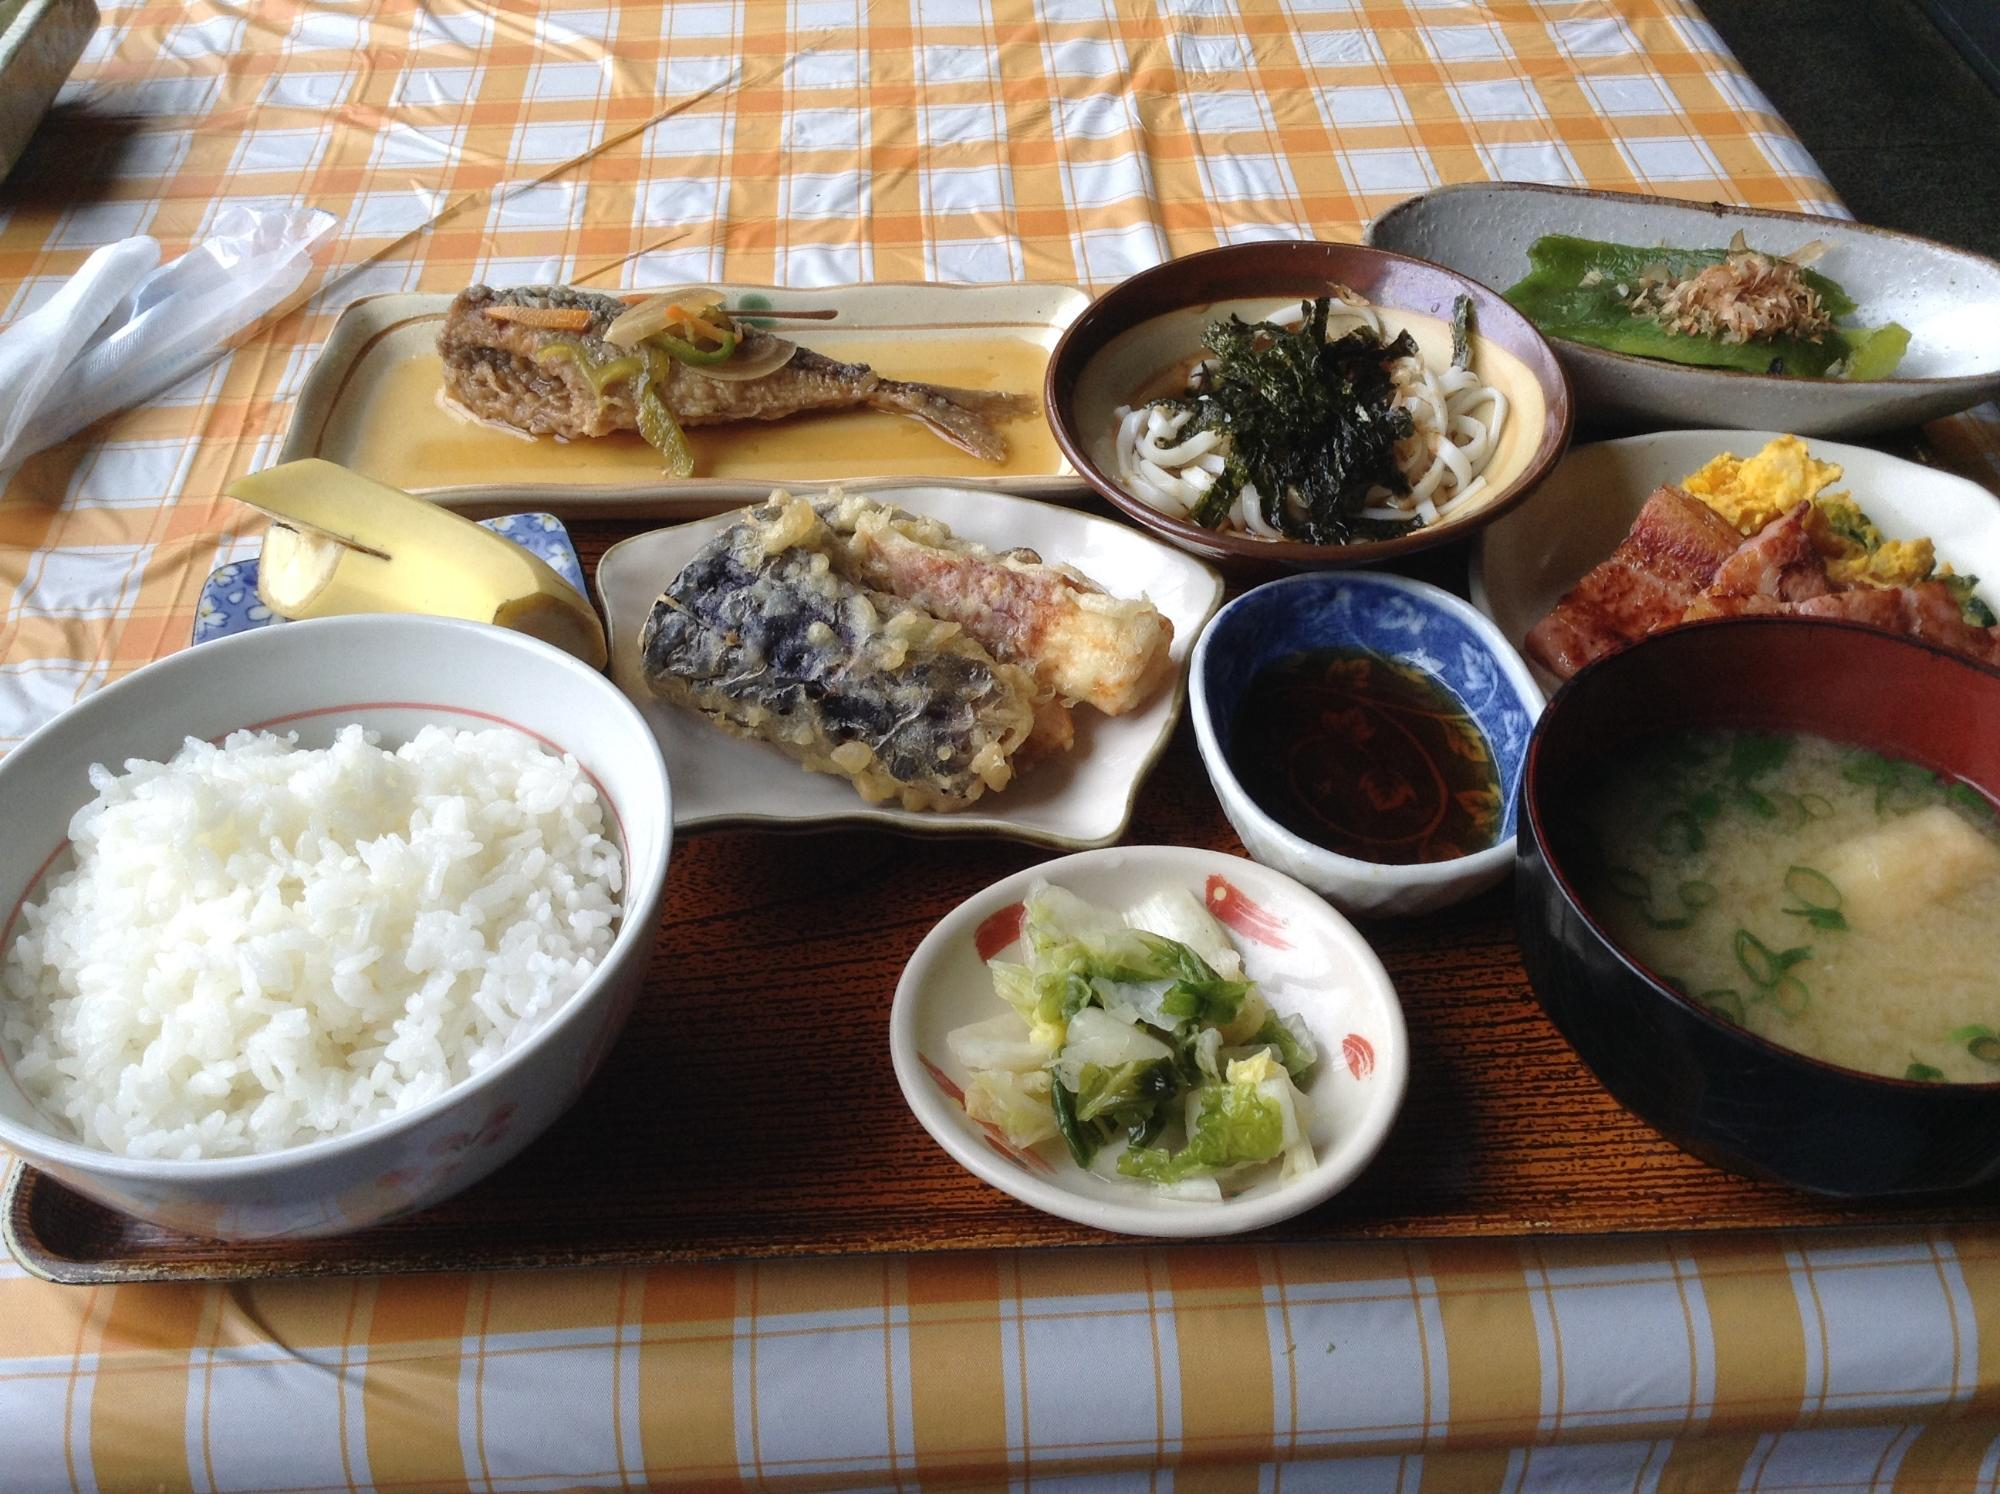 Where to eat International food in Misasa-cho: The Best Restaurants and Bars